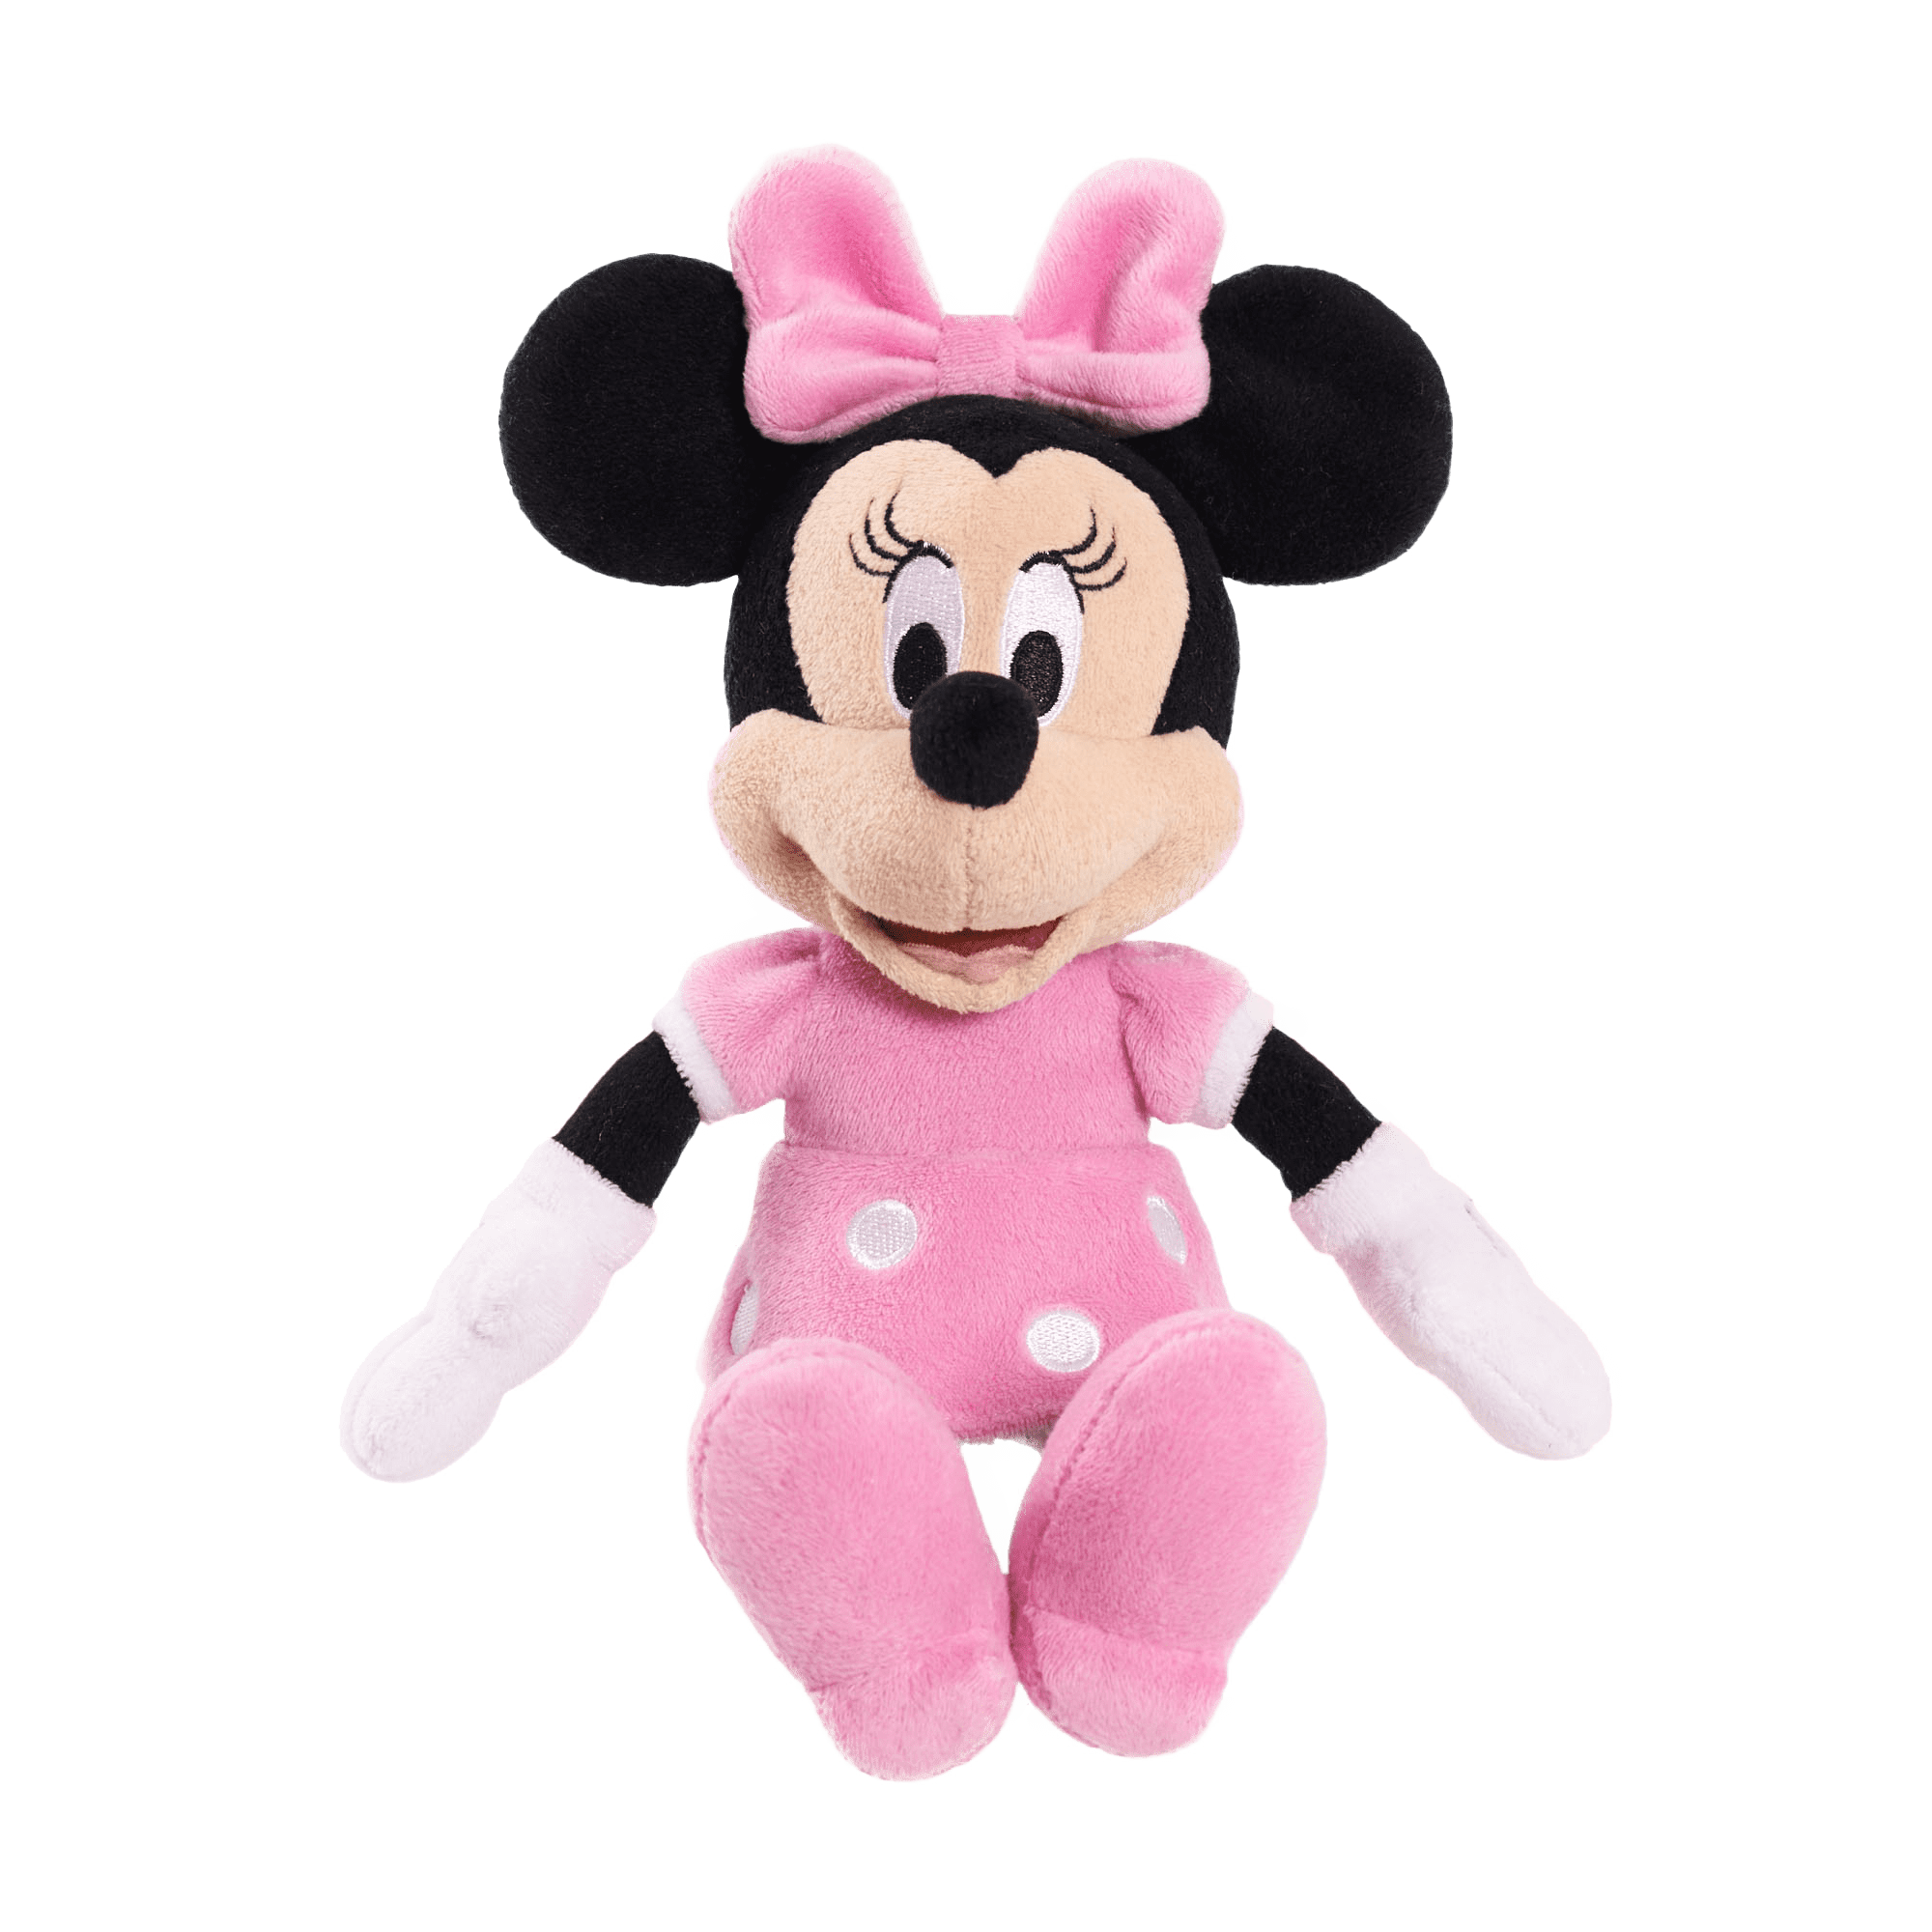 Mickey Mouse & Friends - Minnie Standard Outfit Bean Bag Plush